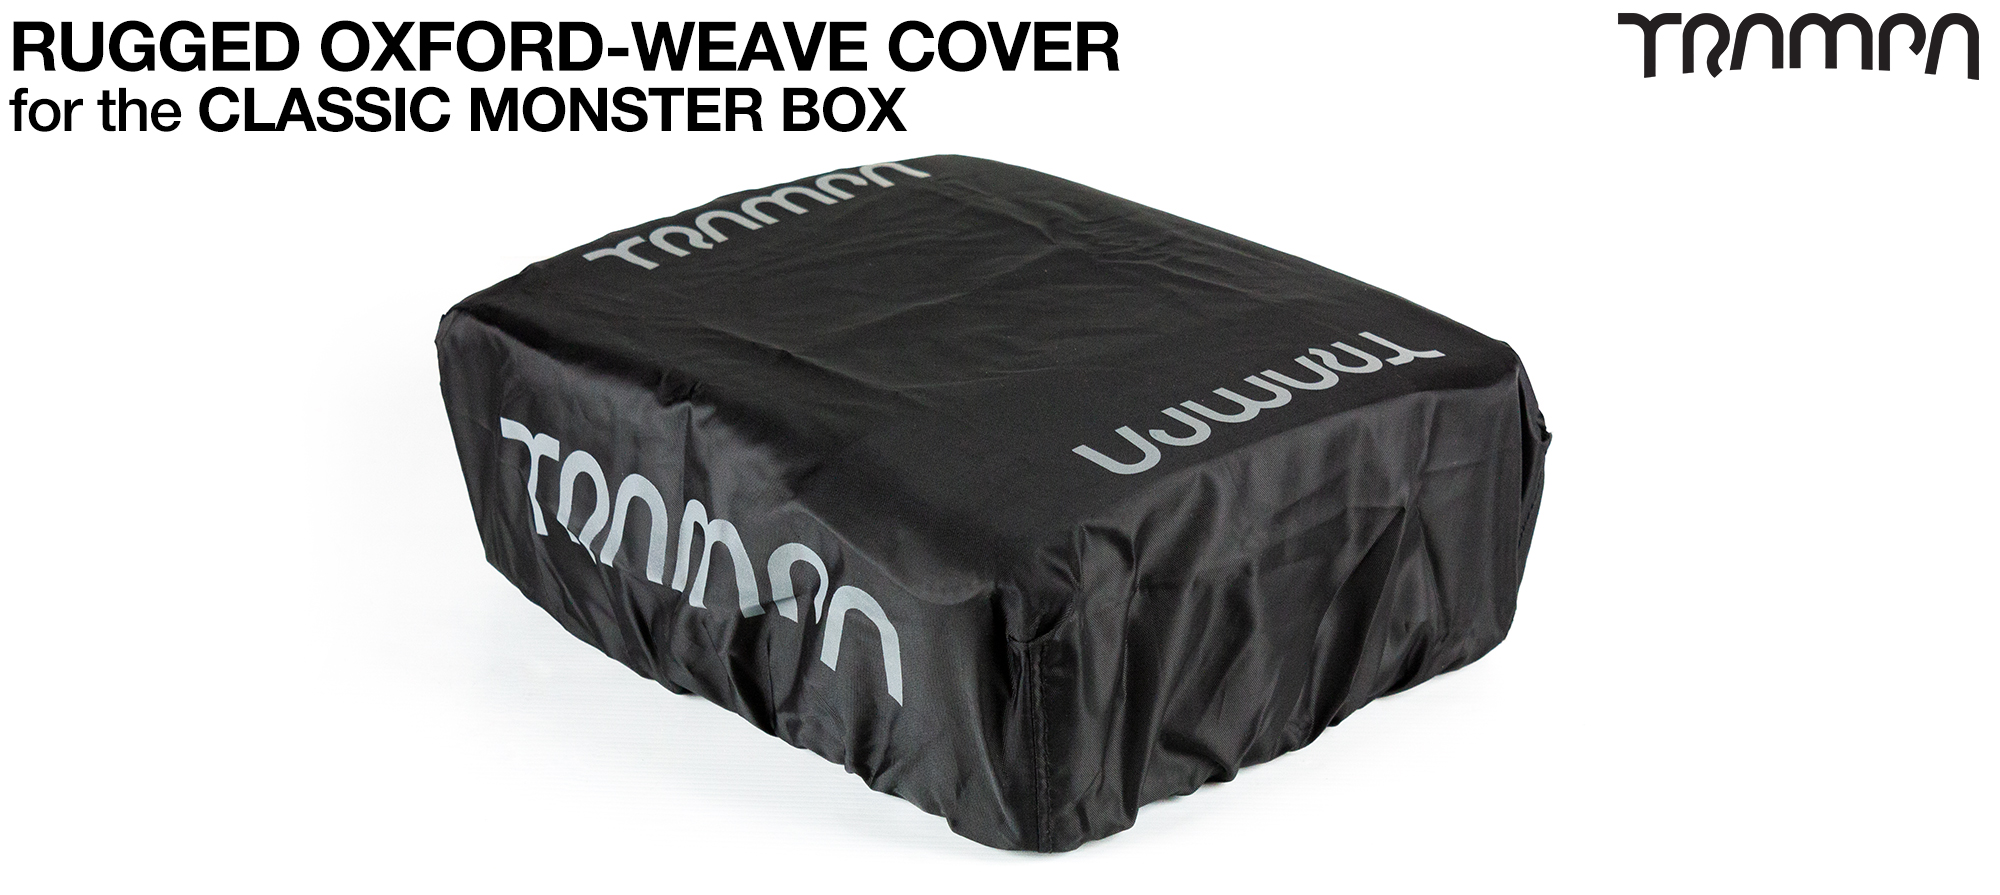 Please add a RUGGED Oxford Weave Classic Monster Box Cover(+£10)